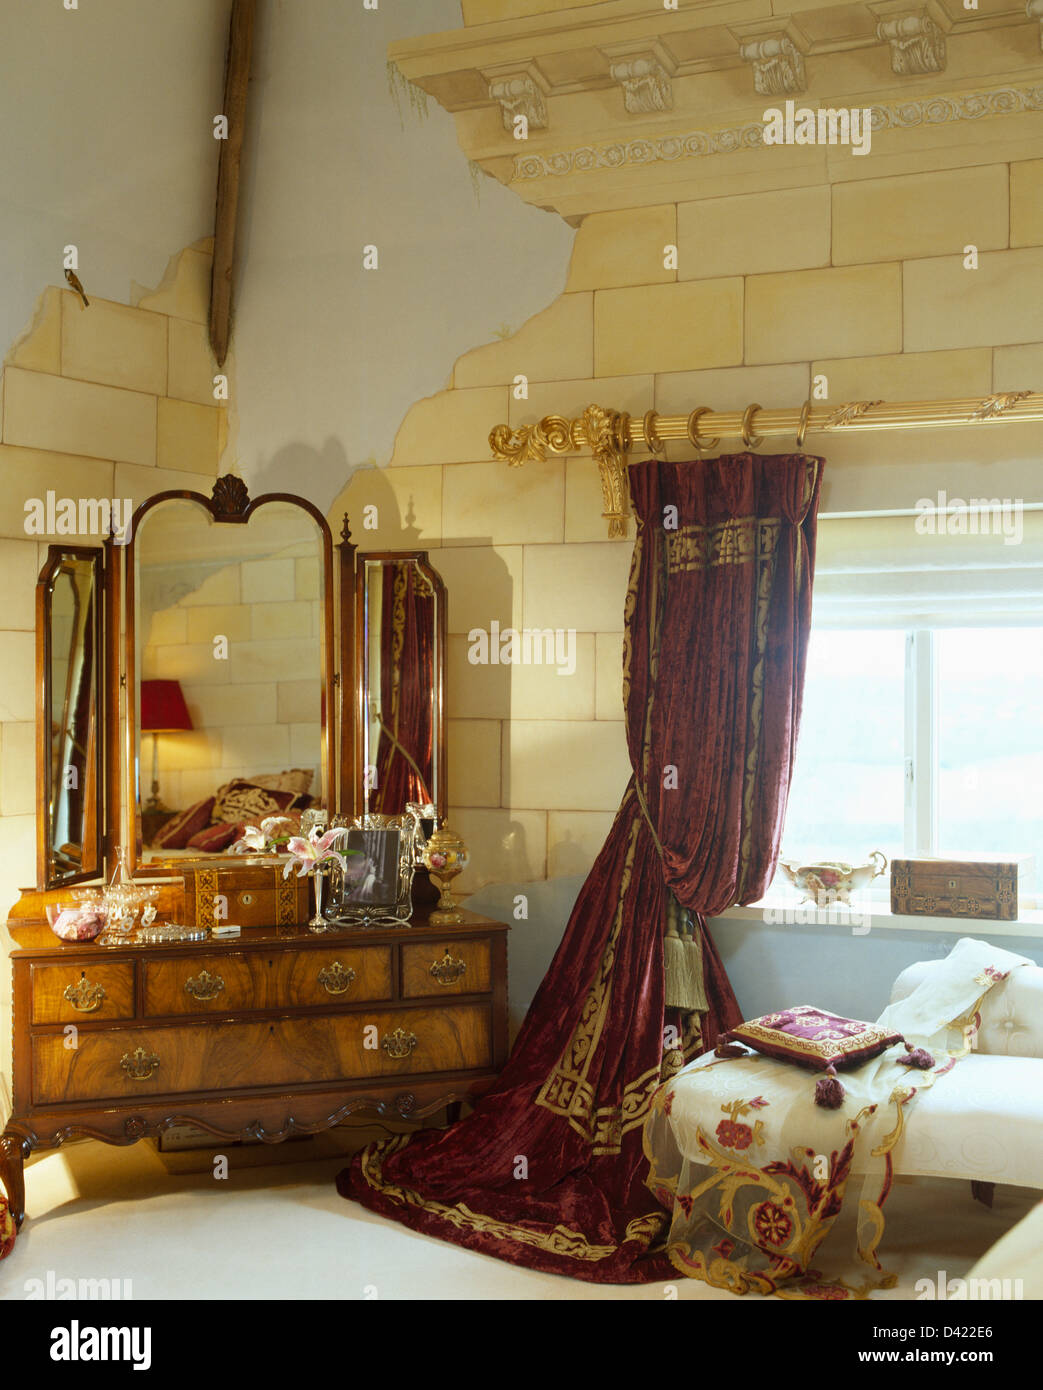 Antique dressing table with mirror - Antique Dressing Table With Triple Mirror In Bedroom With Red Curtain And Trompe L Oeil Stone Wall Paint Effect On The Walls